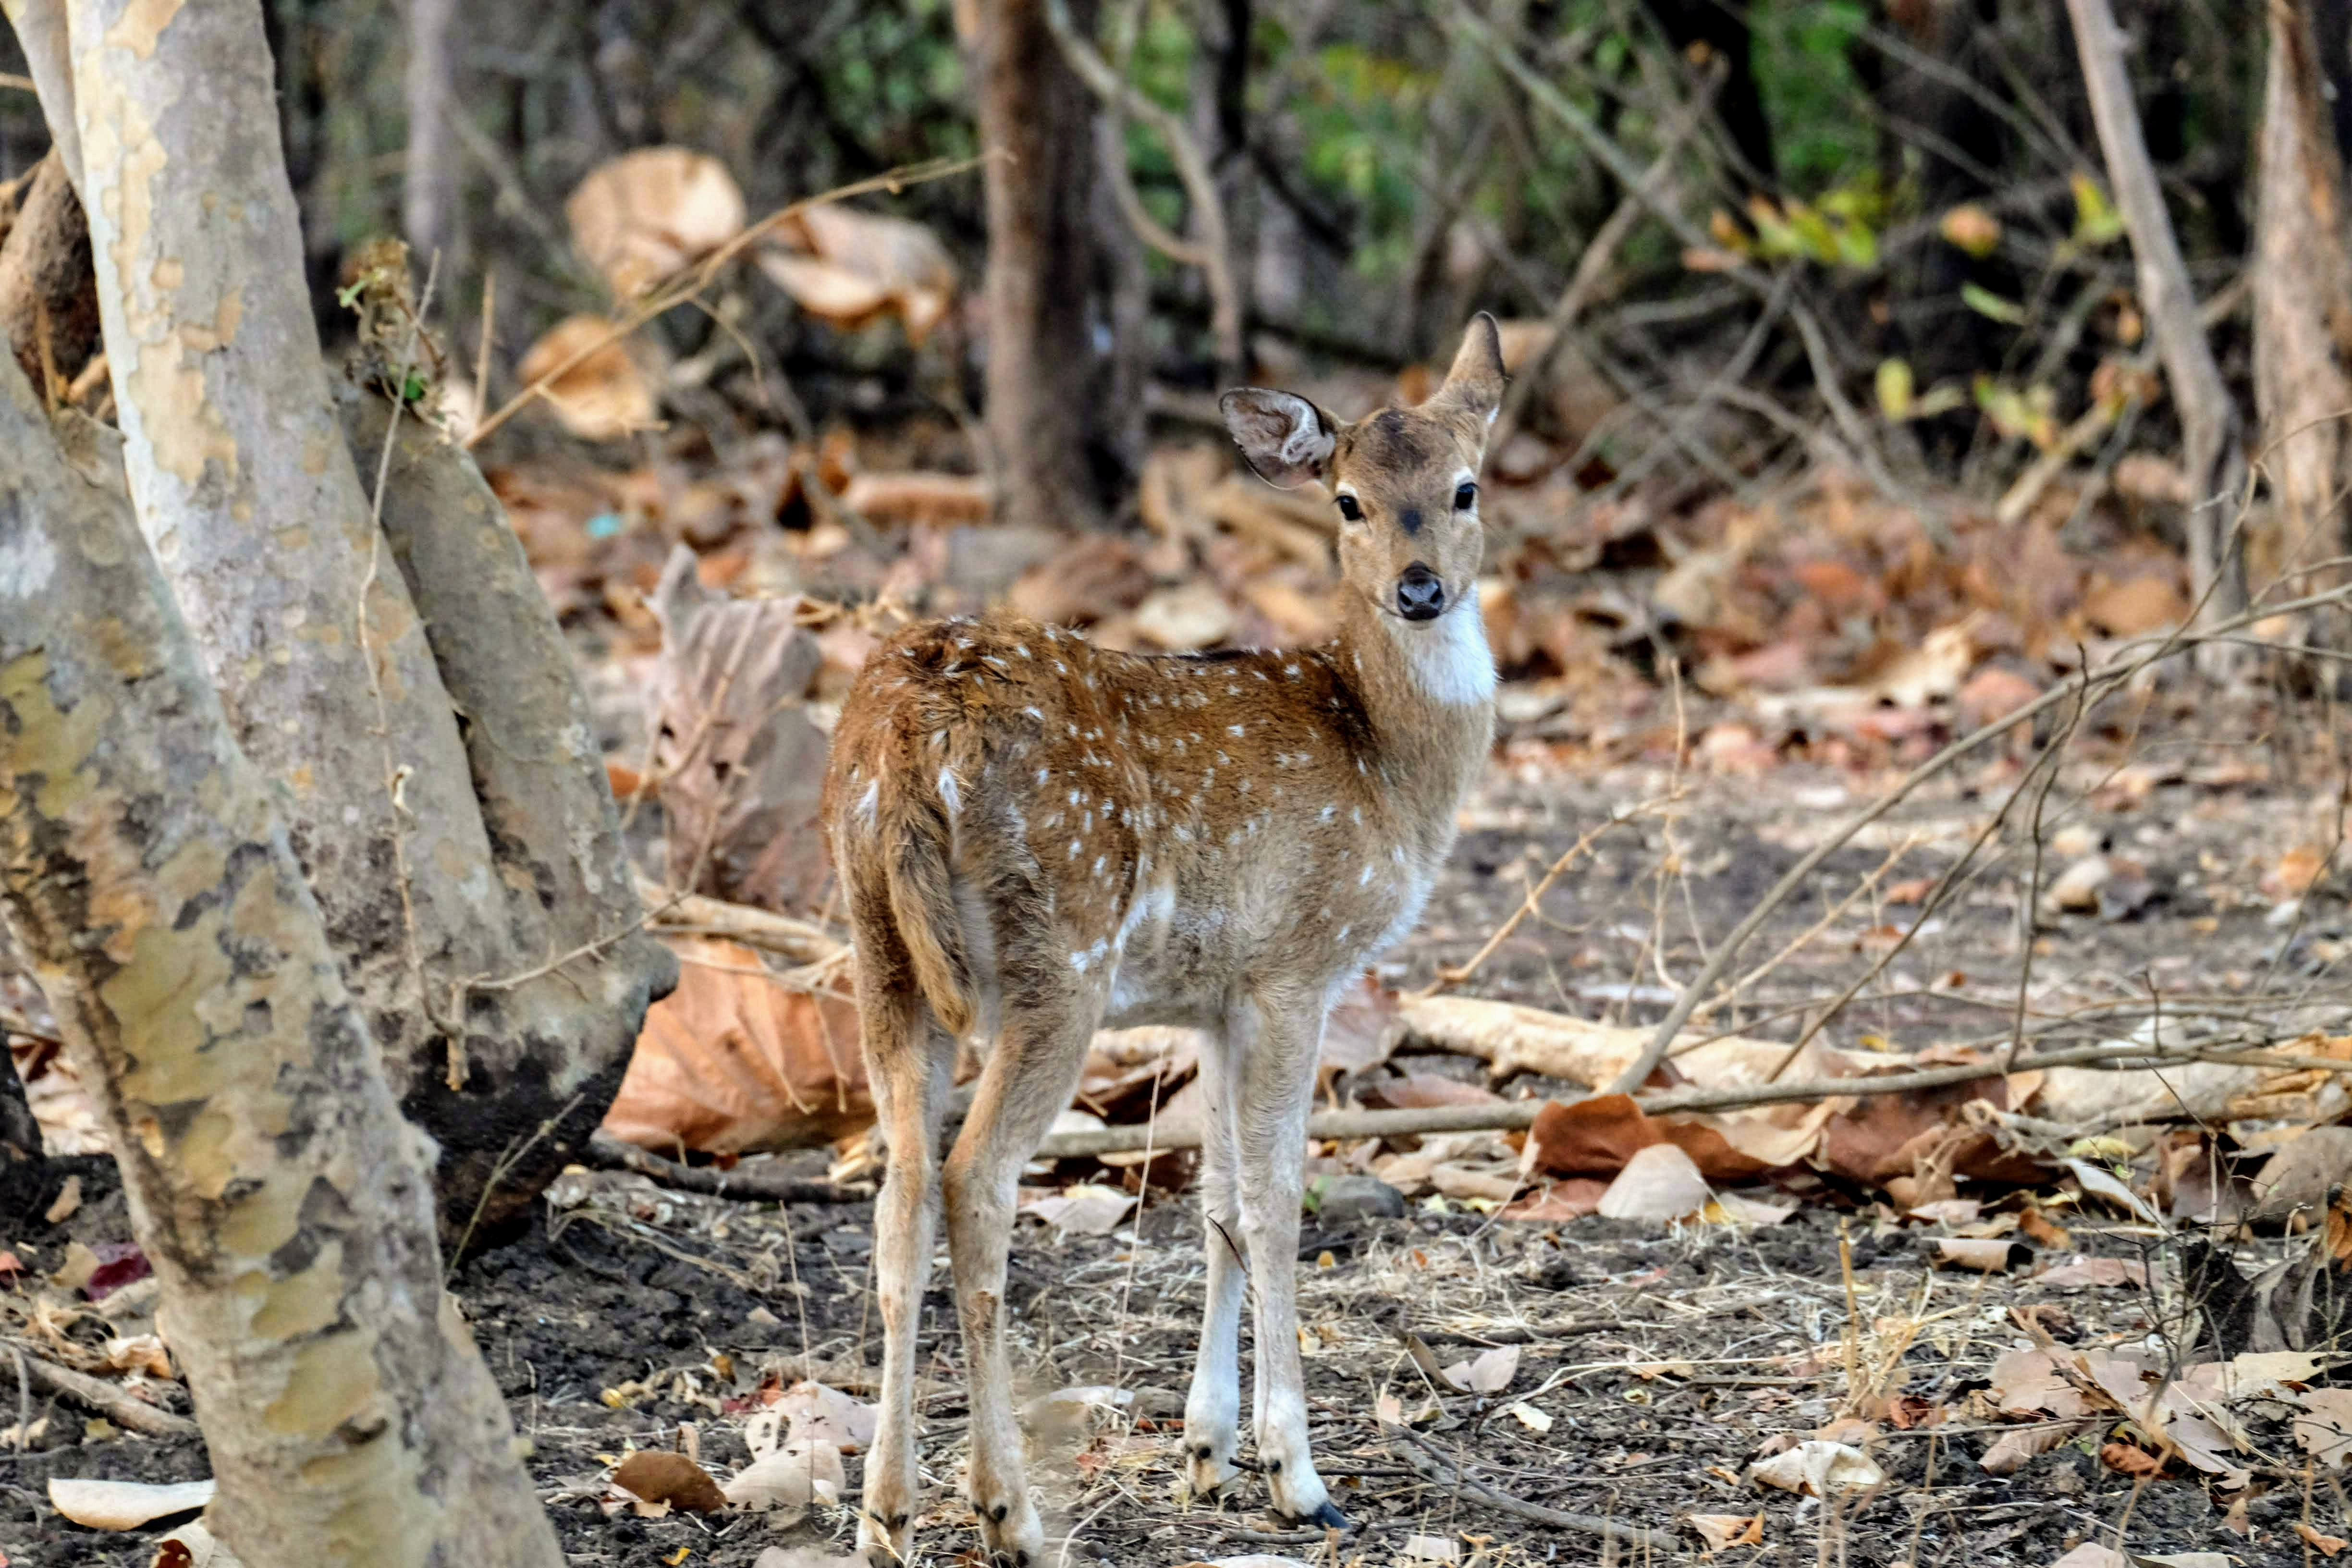 Baby spotted deer, Gir National Park, Gujarat